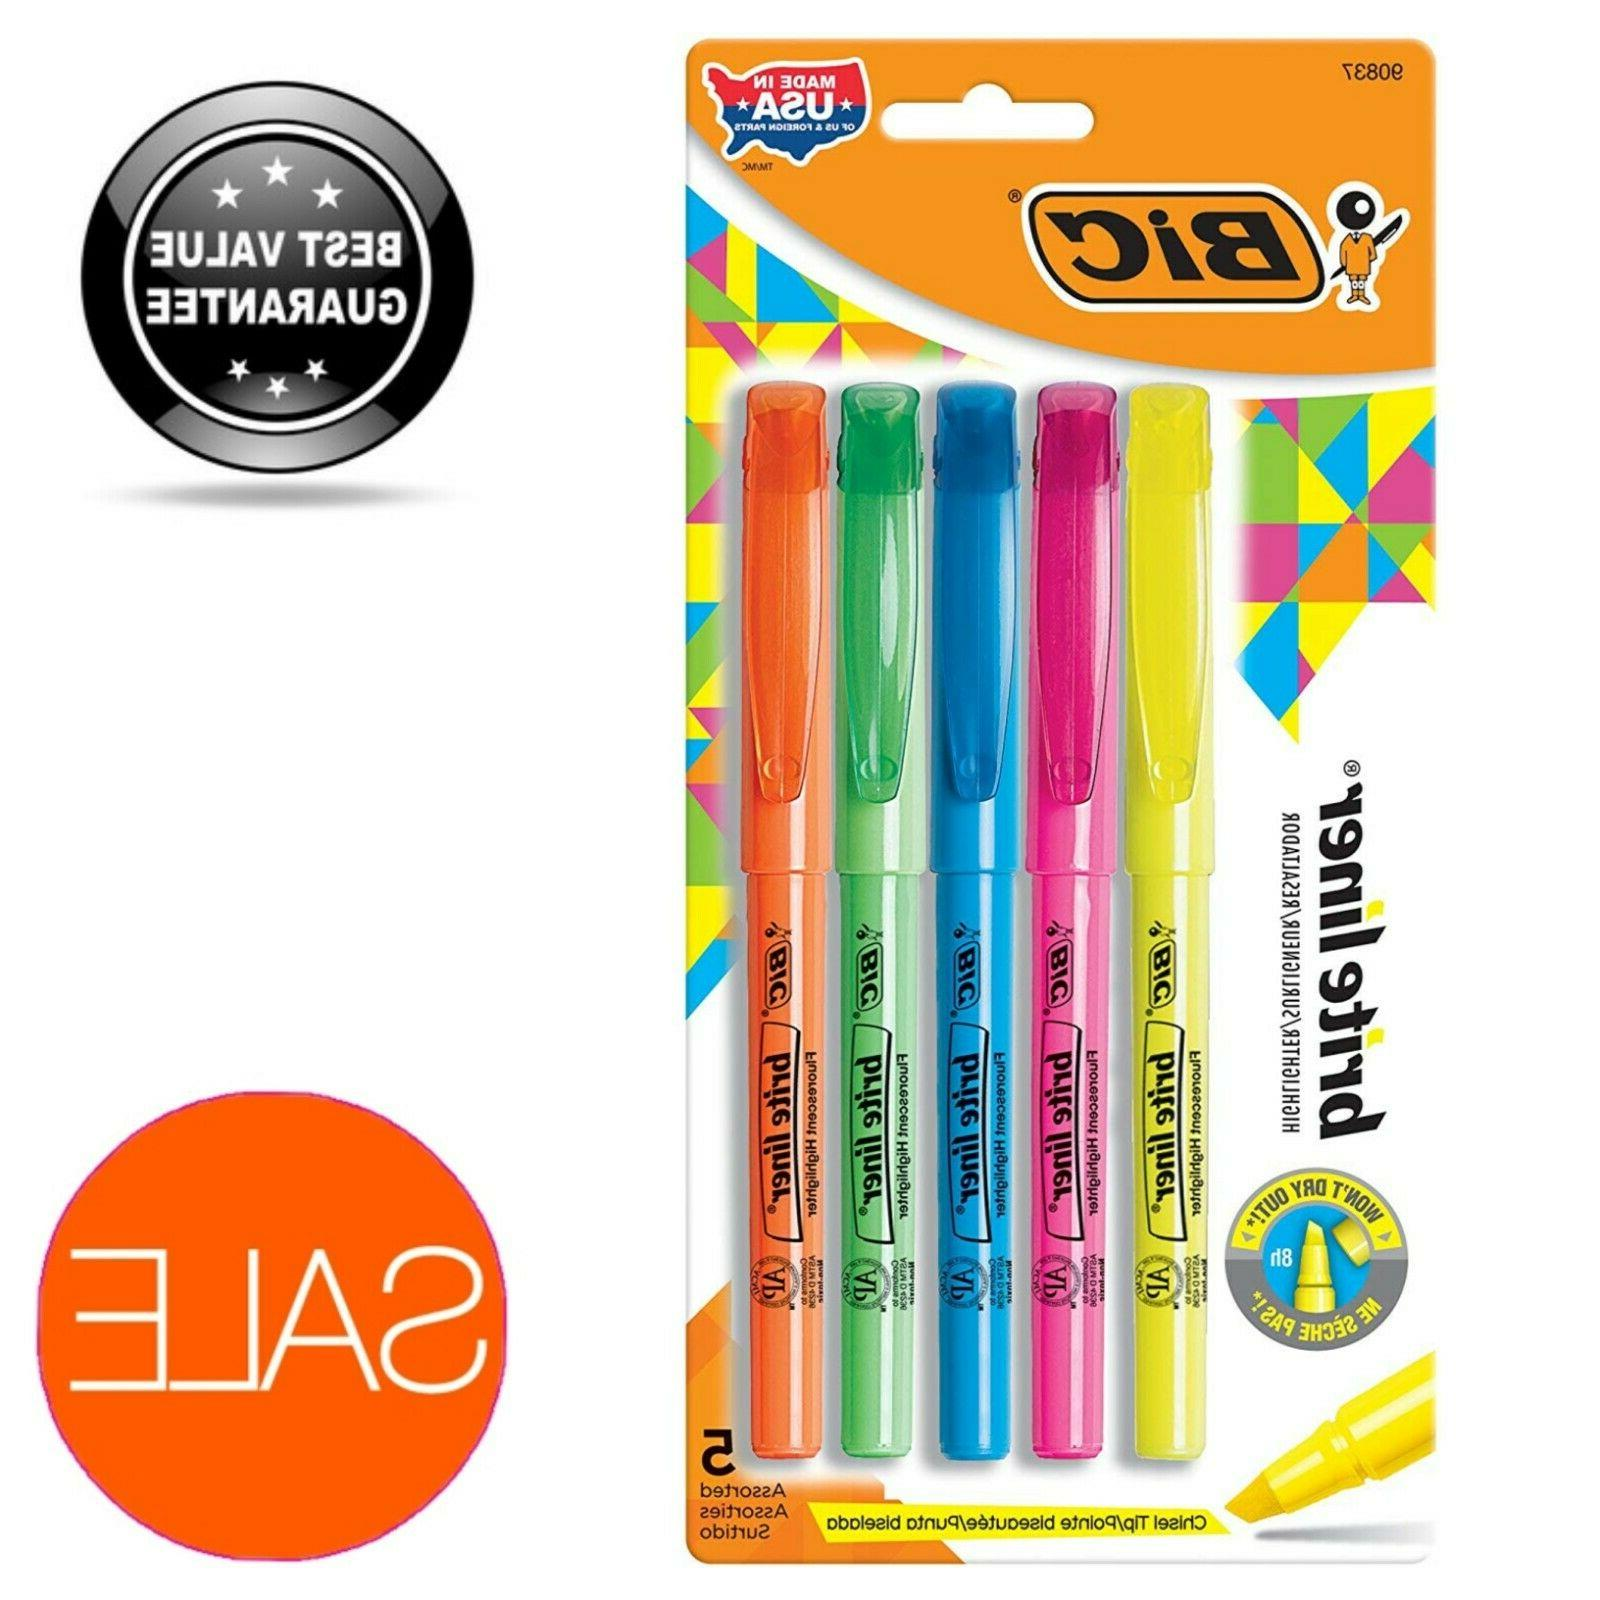 BIC 5x Super Bright Fluorescent Ink Liner Highlighter Assort